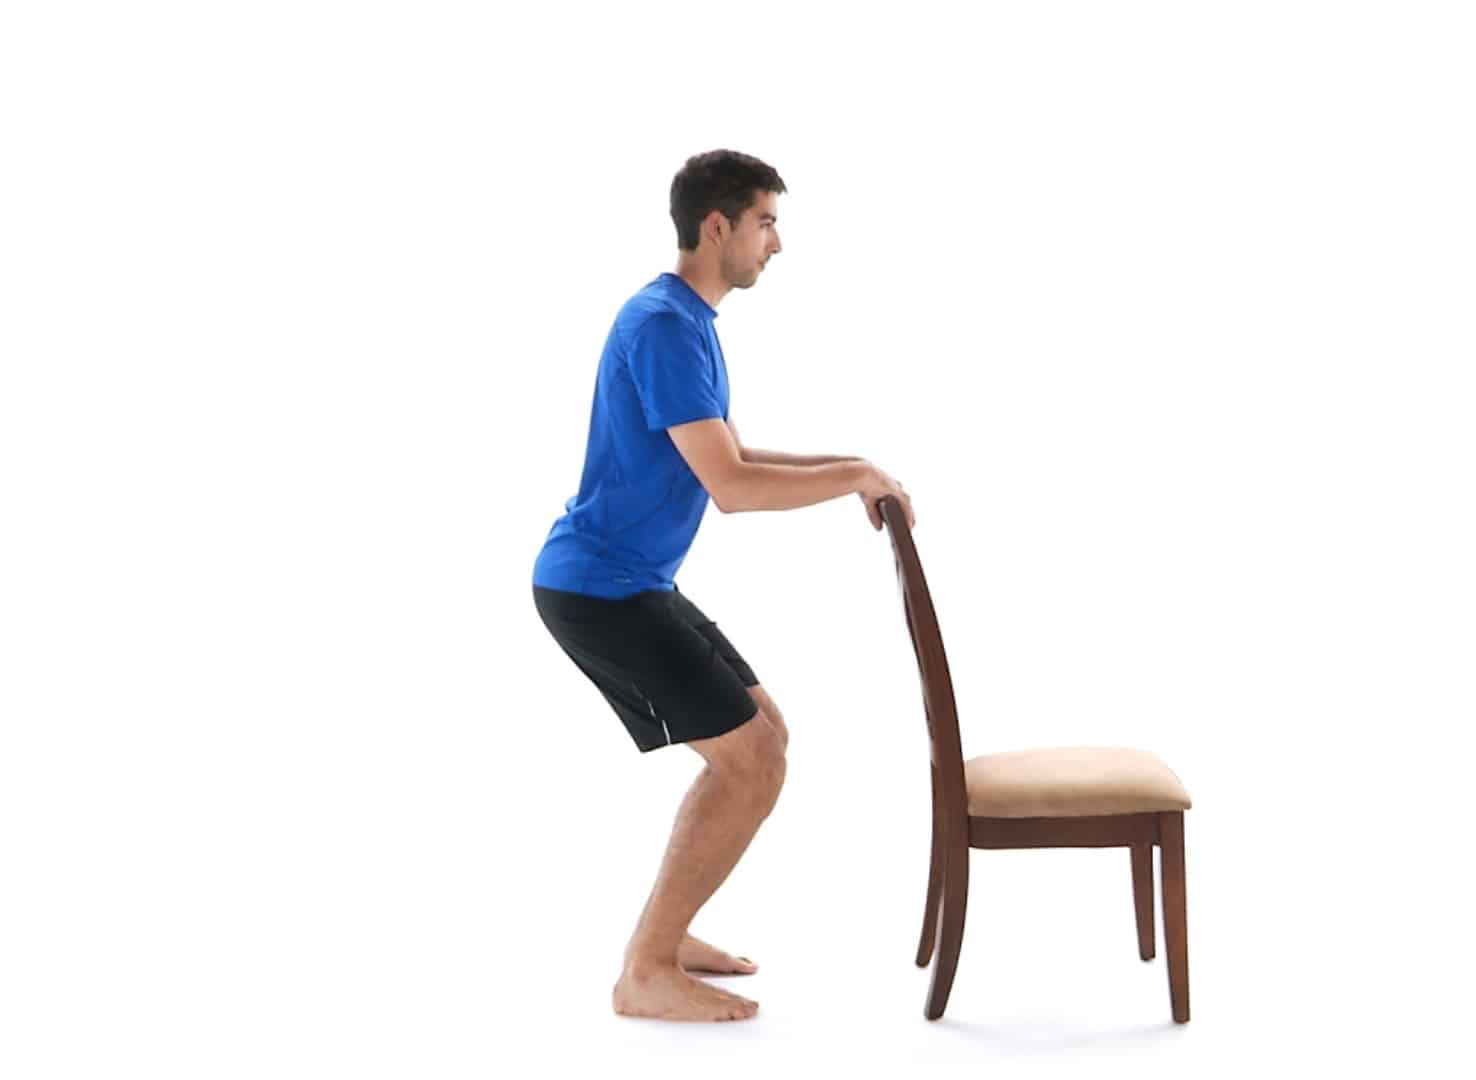 Partial squats using a chair